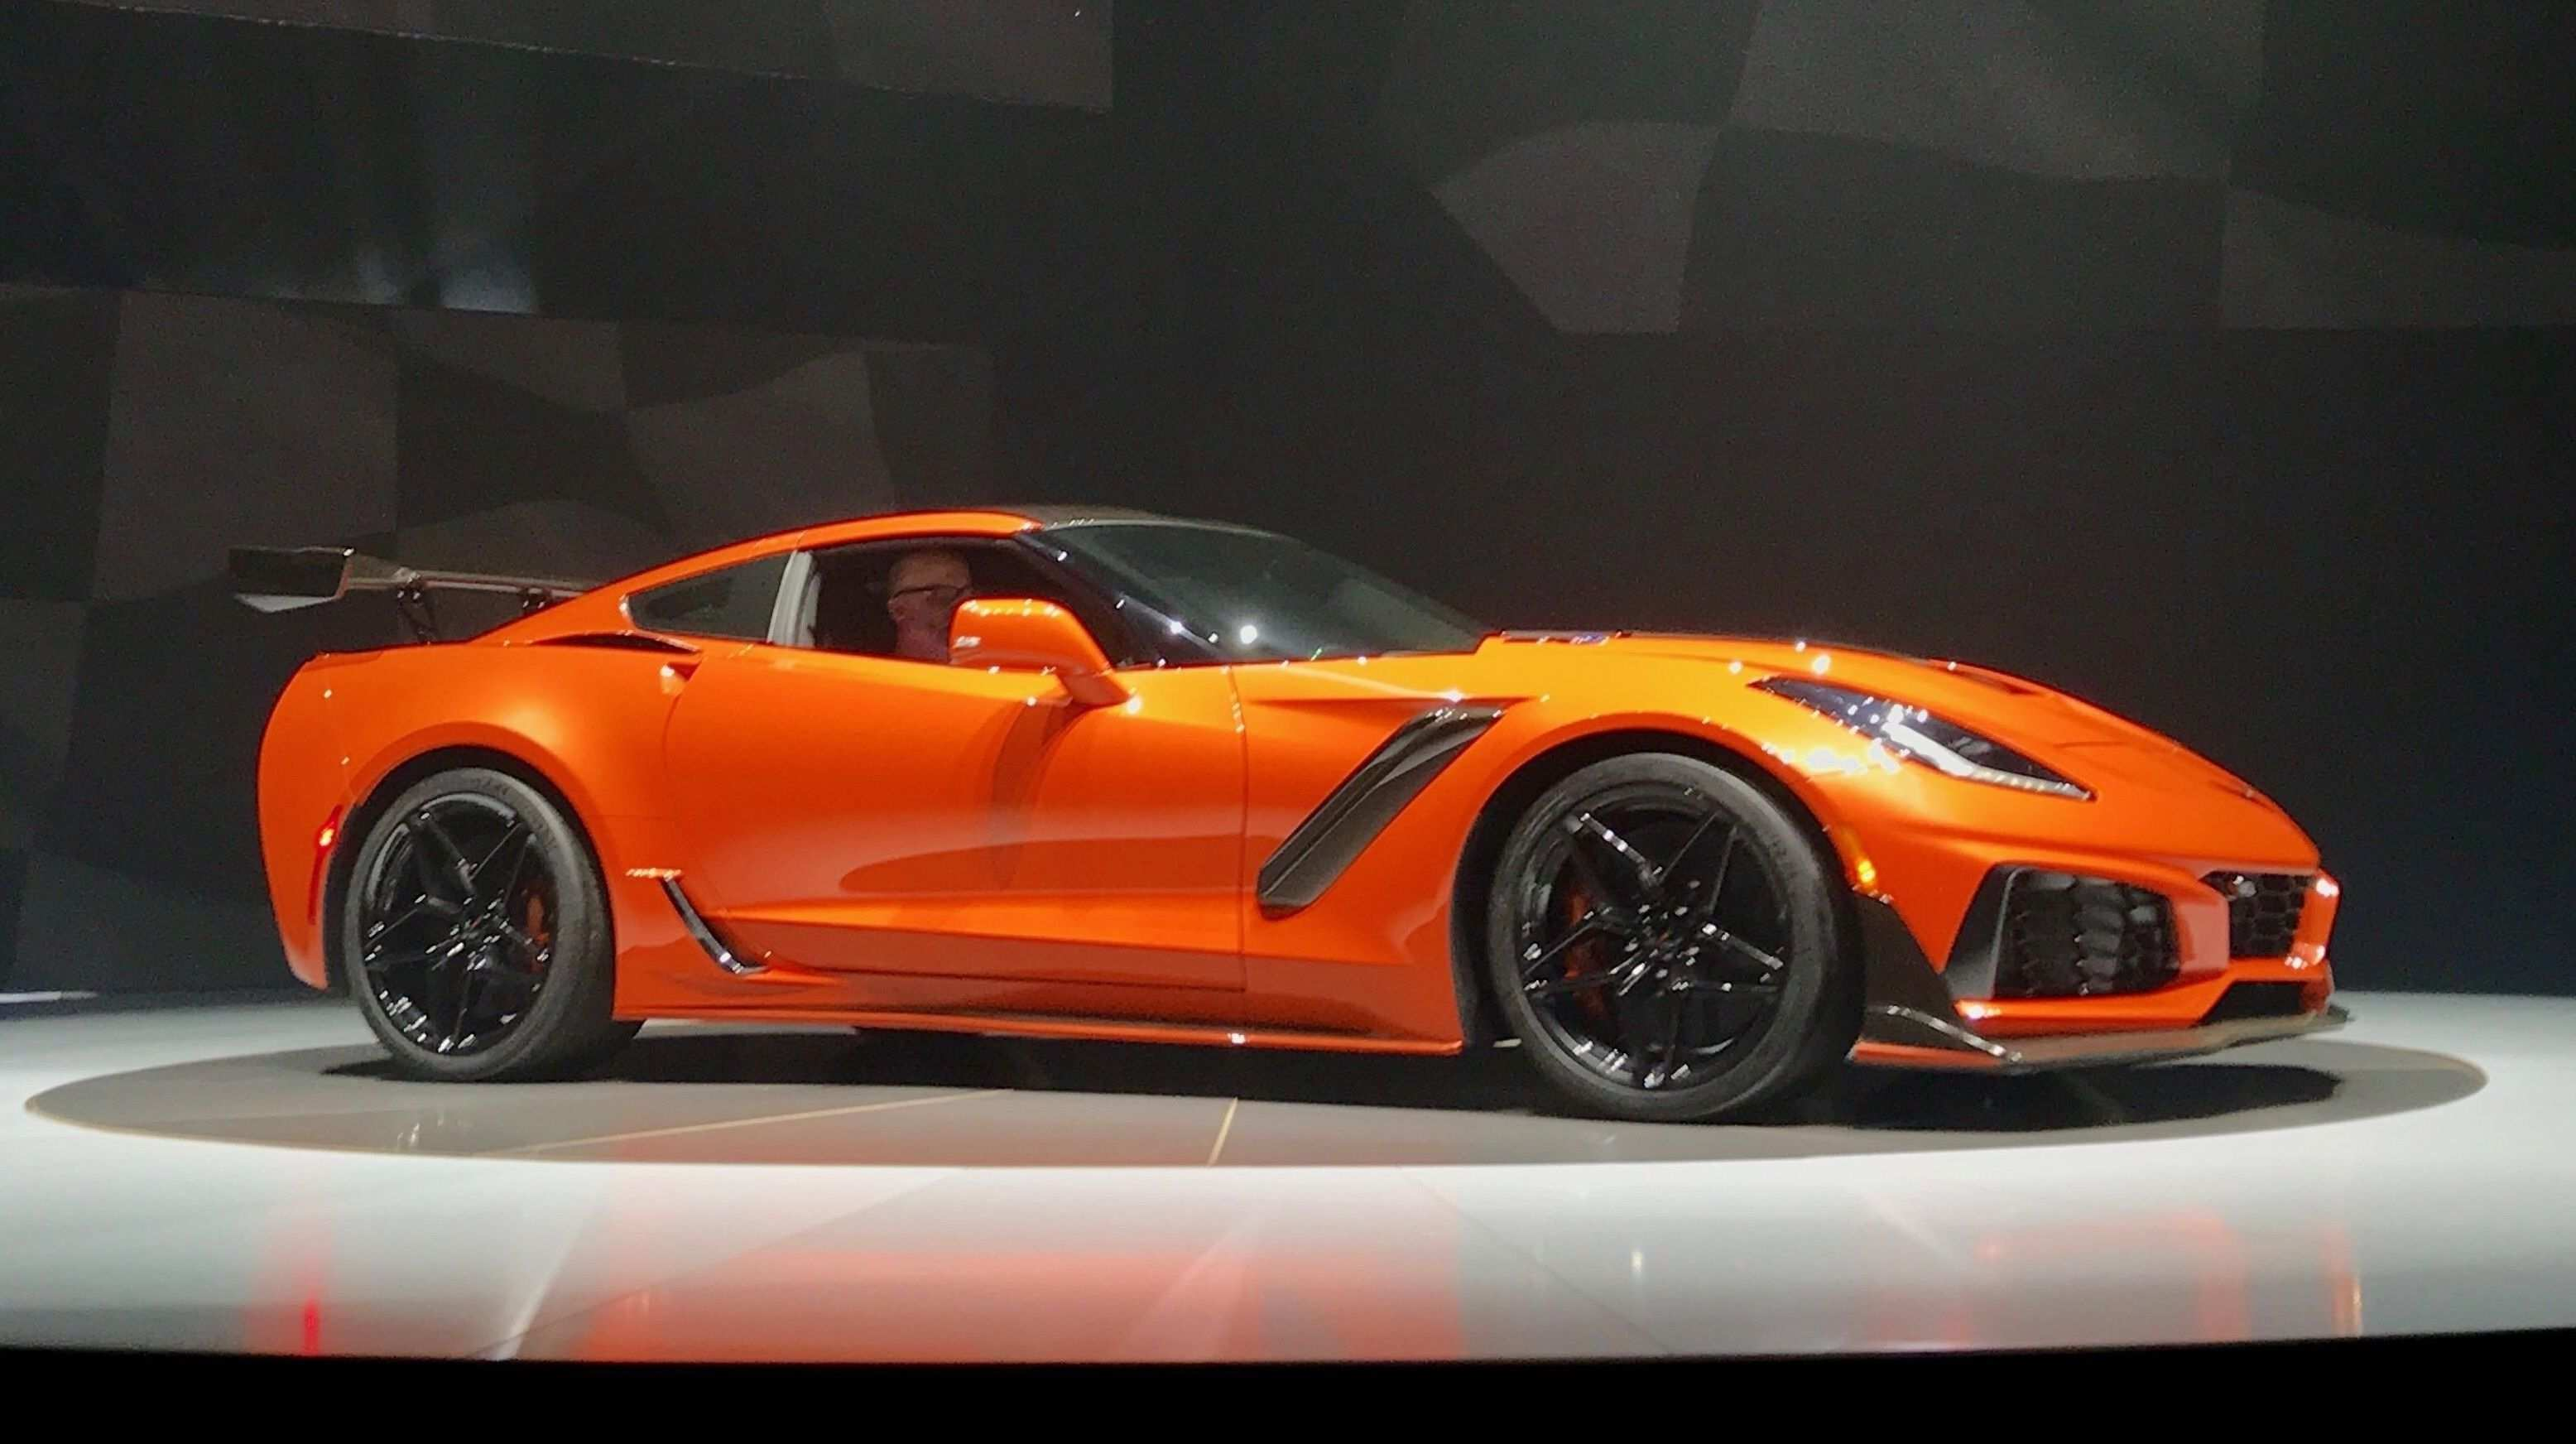 44 Concept of 2019 Chevrolet Corvette Zr1 Price Picture with 2019 Chevrolet Corvette Zr1 Price